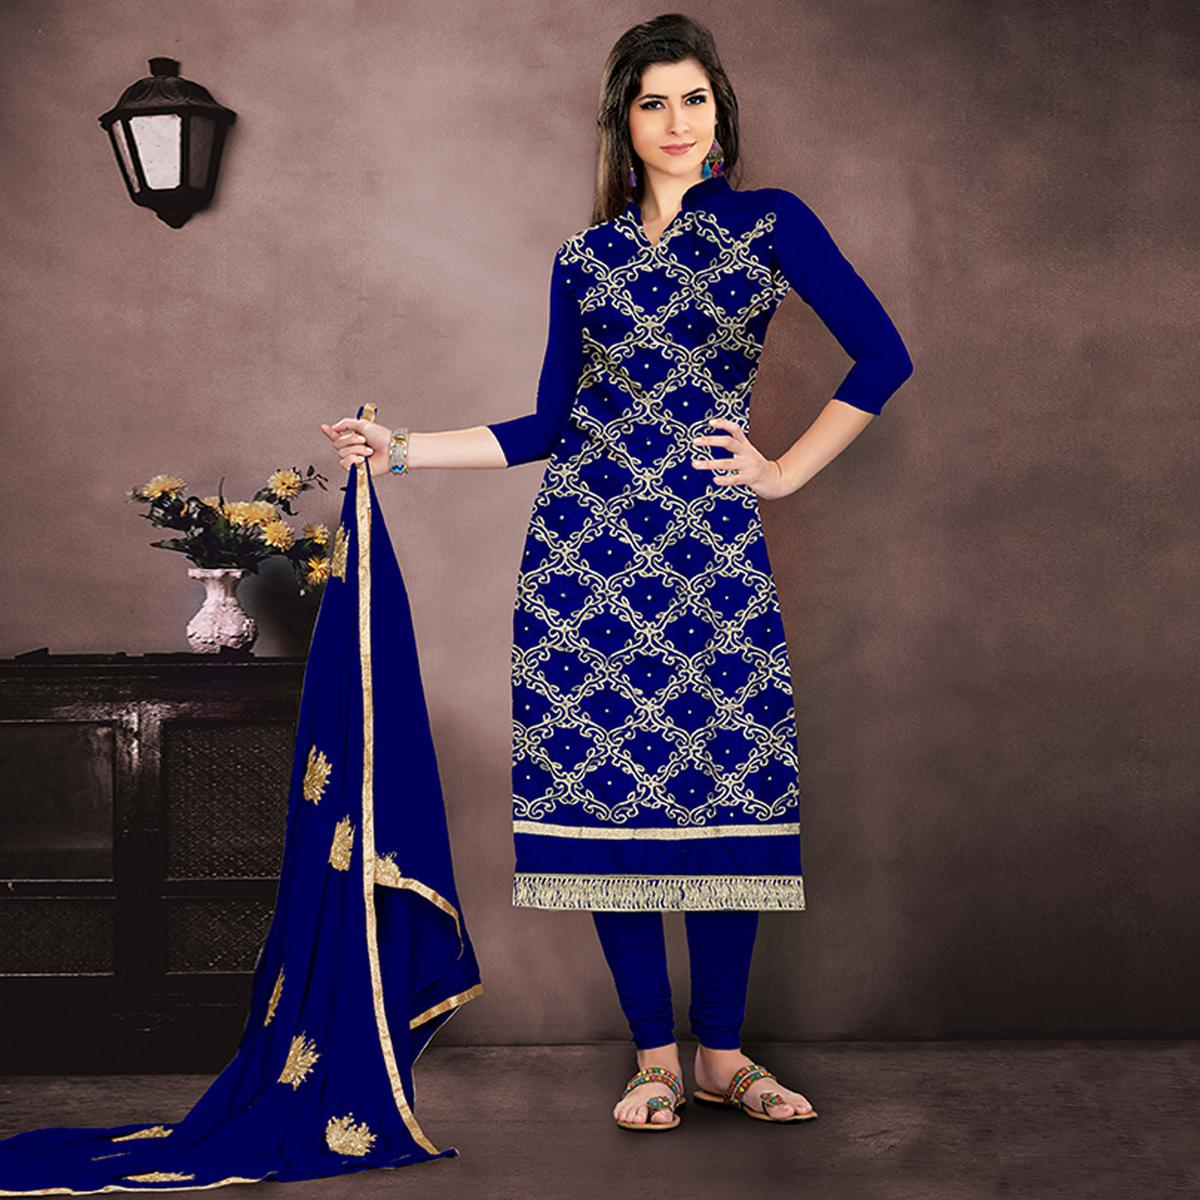 d55c00ad02 Buy Beautiful Royal Blue Colored Party Wear Embroidered Modal Chanderi  Dress Material online India, Best Prices, Reviews - Peachmode